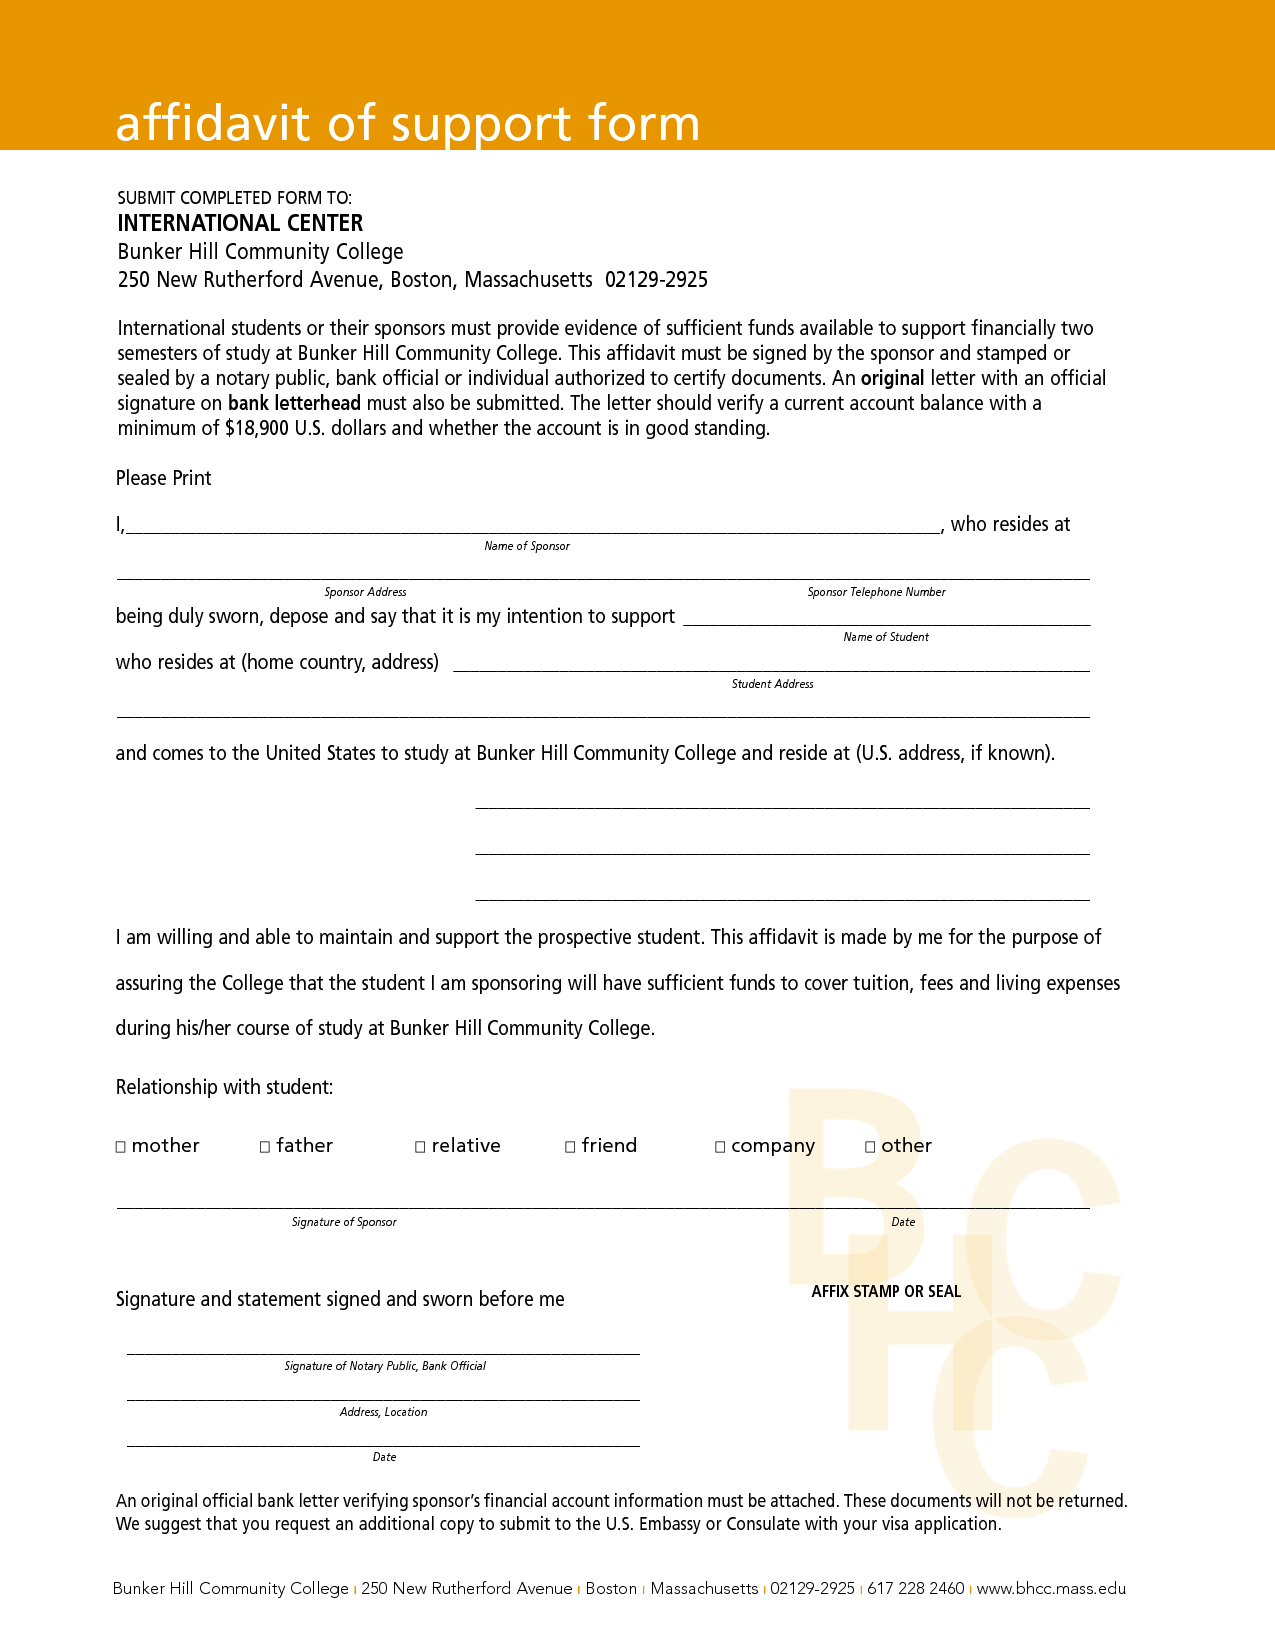 Affidavit Letter Sample – Affidavit of Support Letter